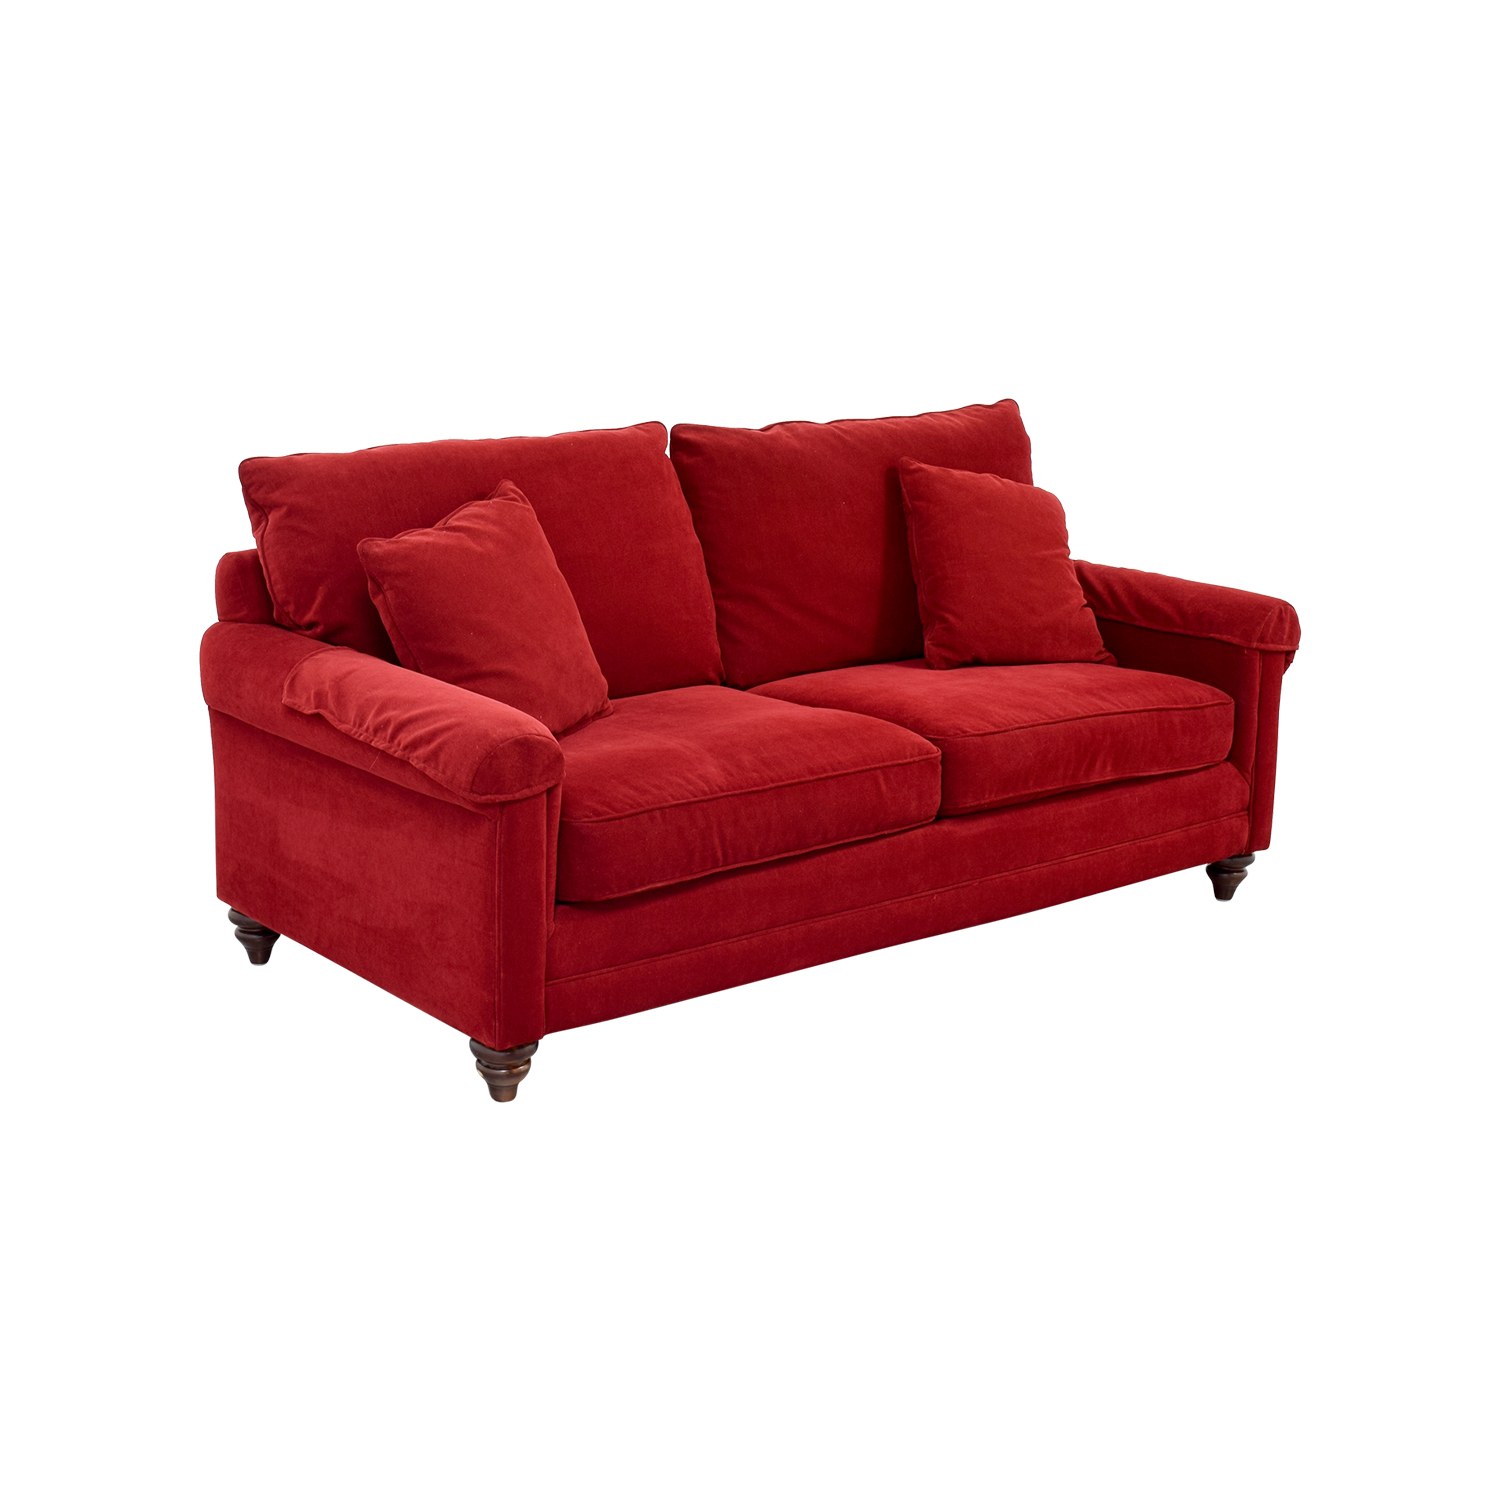 Red curved sofa style sectional sofa curved tos lf 4522 for 2 piece red sectional sofa